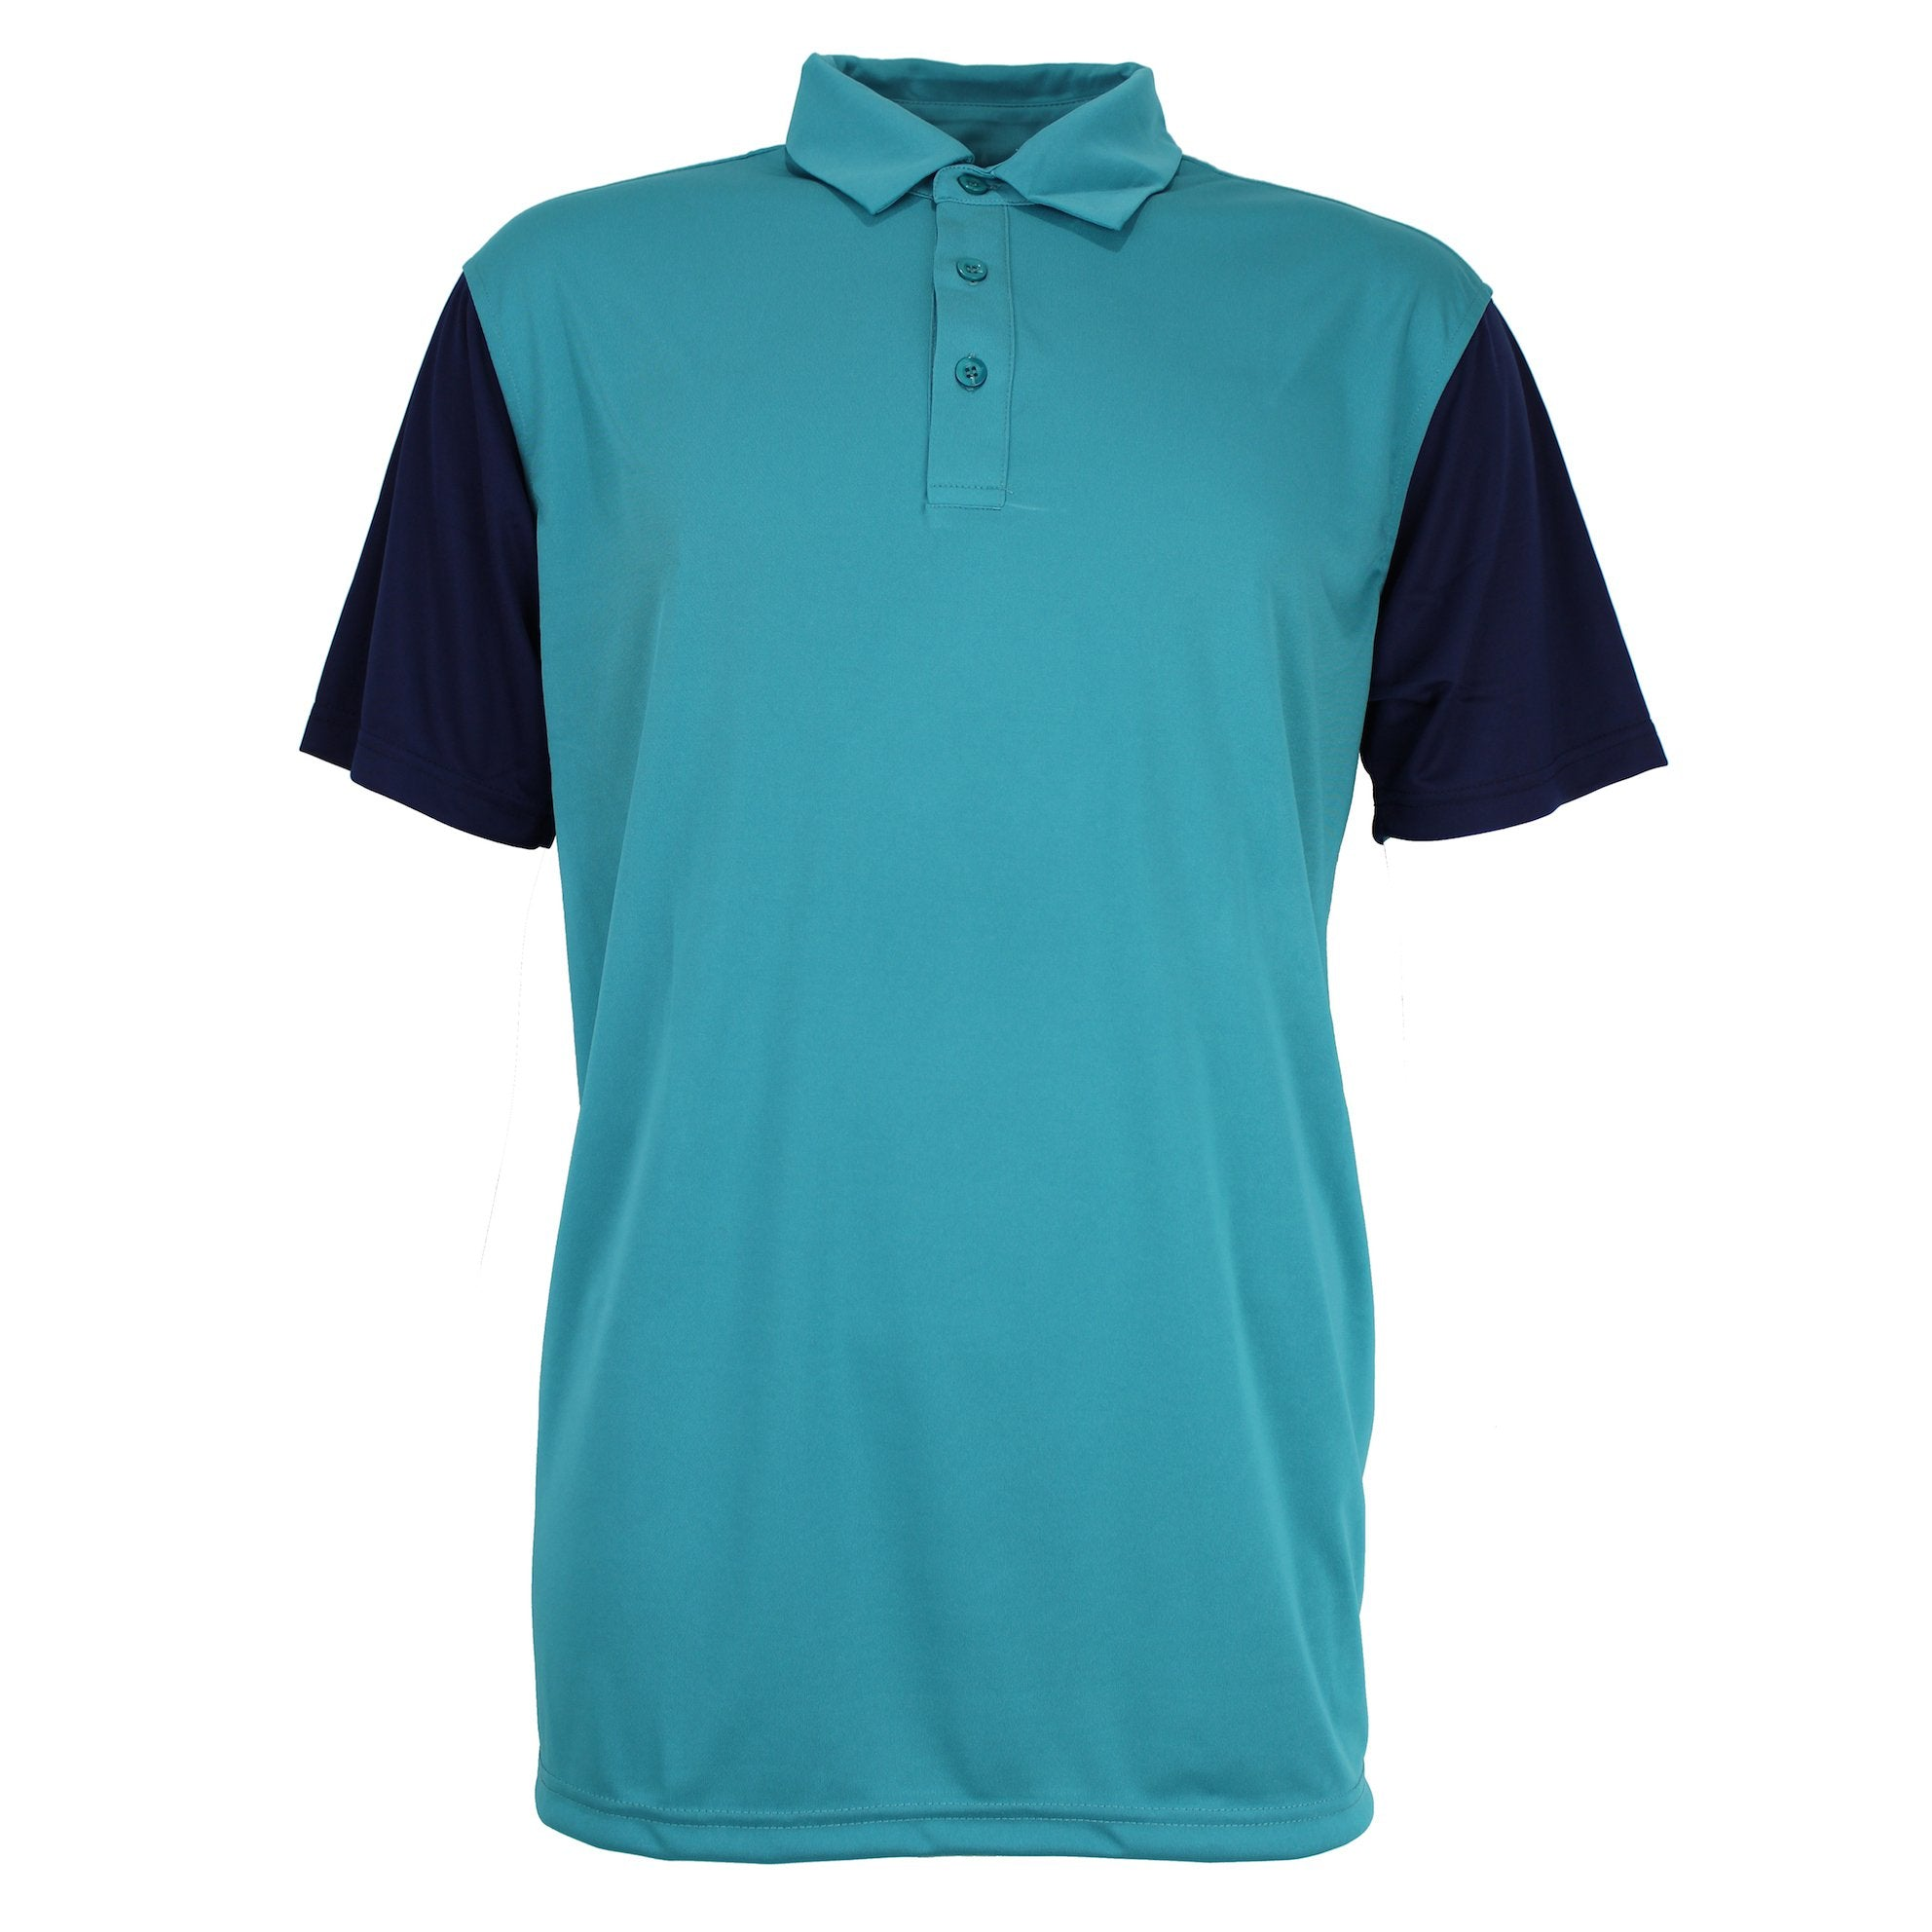 Druids Golf - Mens Casual Polo 2018 (Teal/Navy)